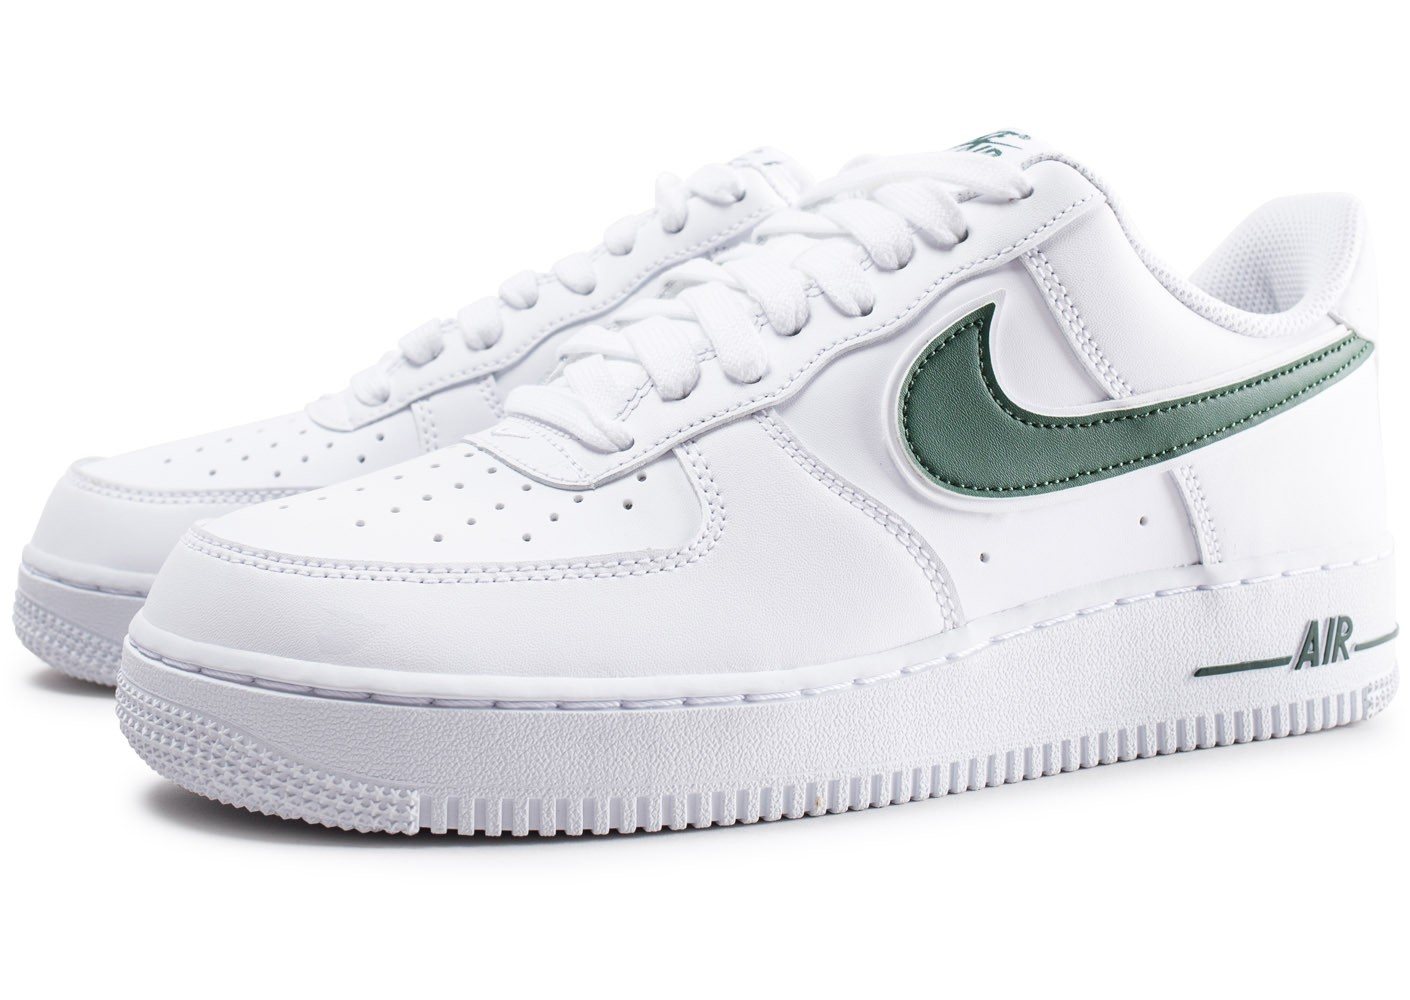 Nike Air Force 1 '07 blanche et verte - Chaussures Baskets homme ...